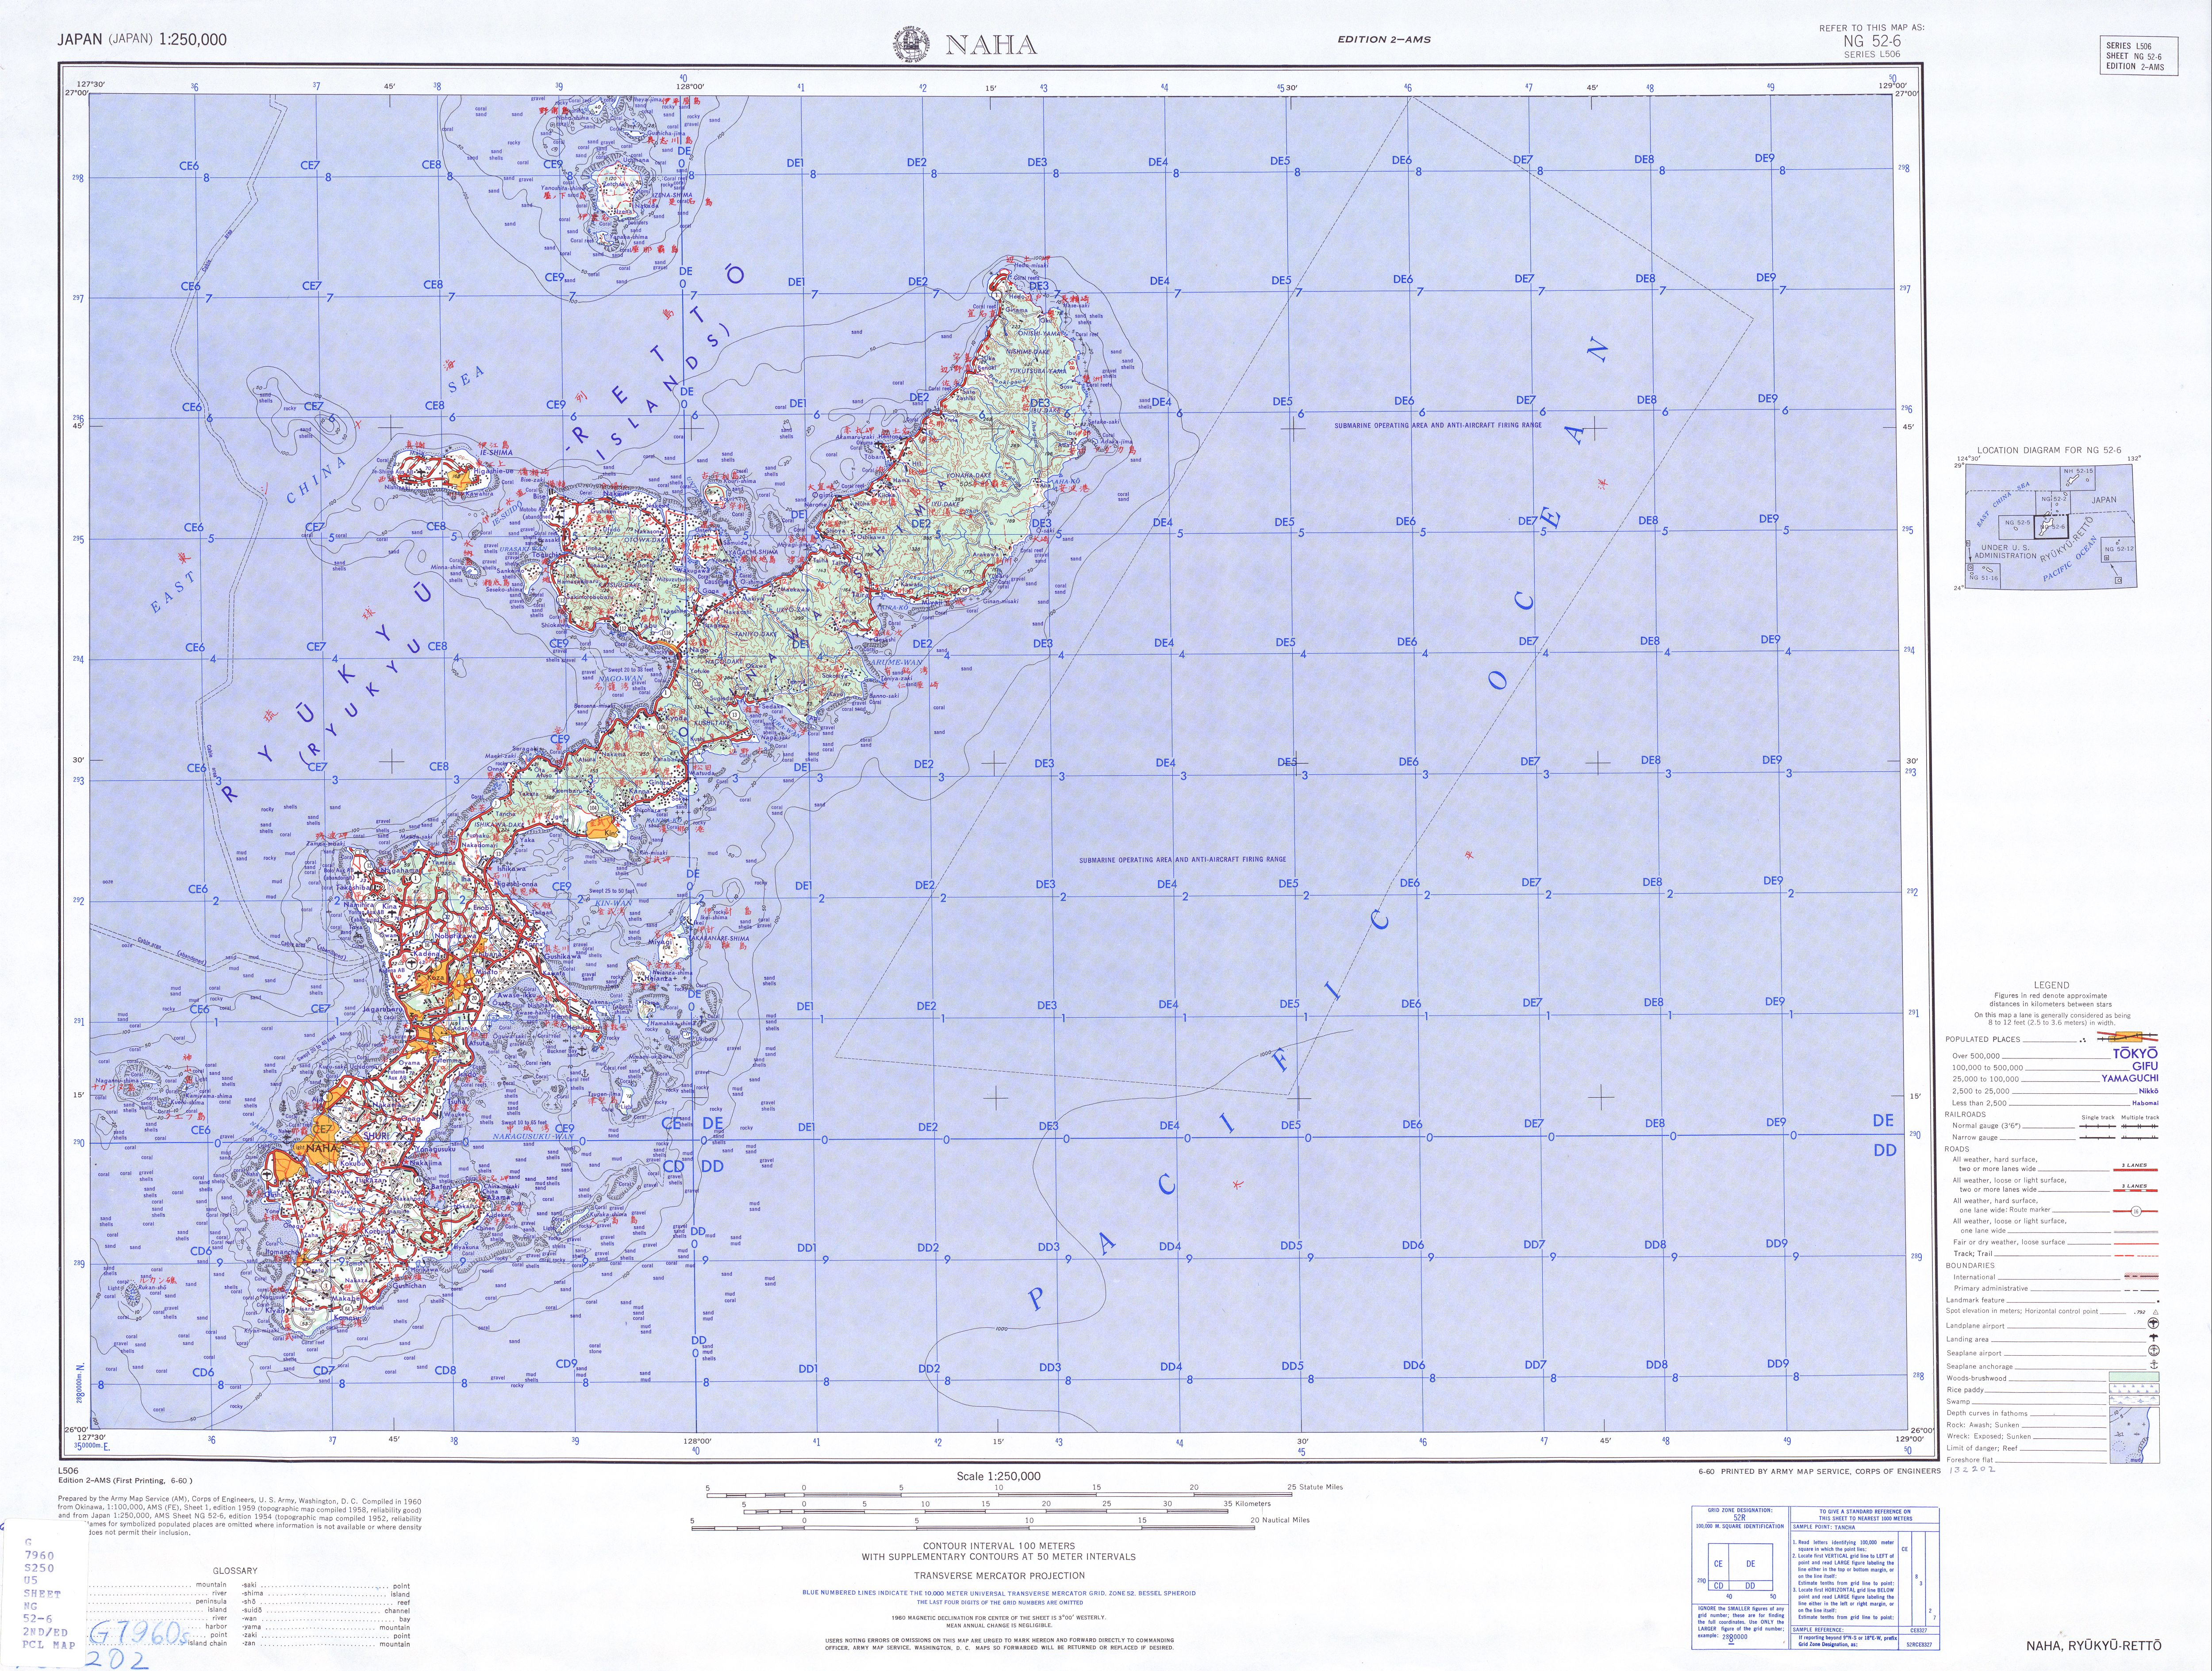 Japan Ams Topographic Maps Perry Castaneda Map Collection Ut